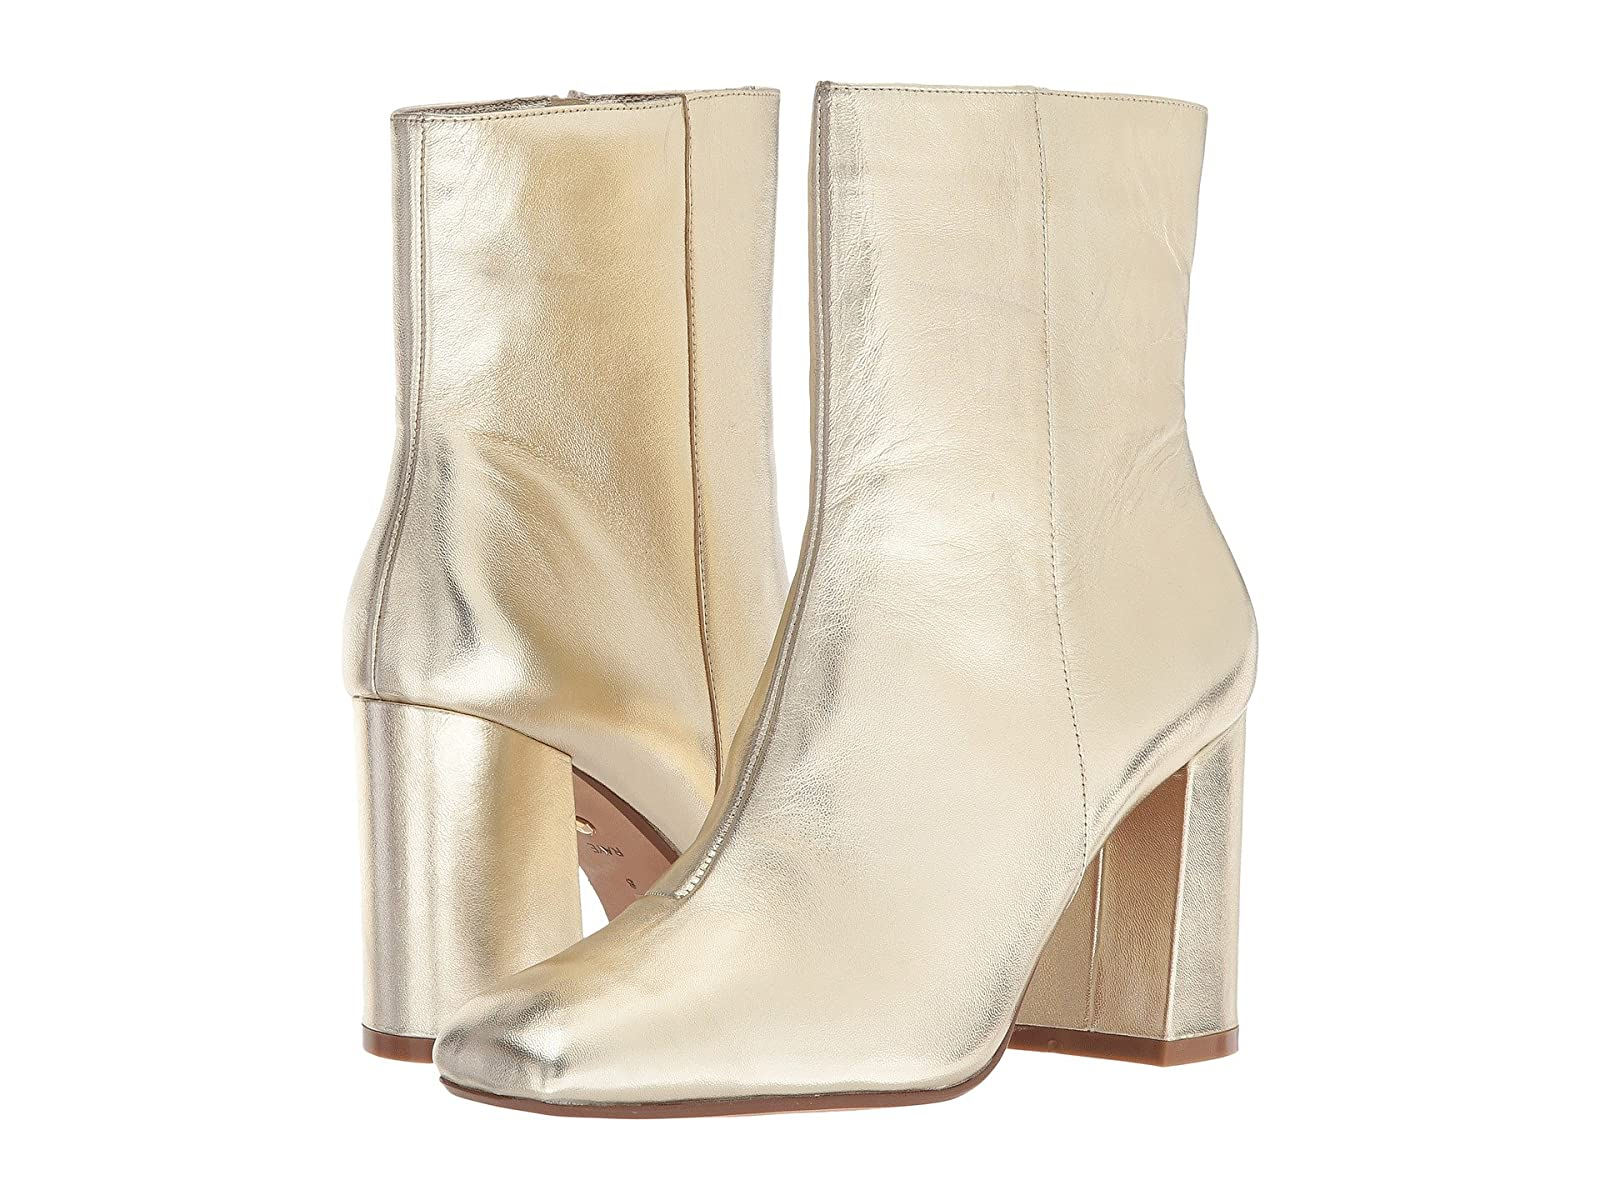 RAYE HollandCheap and distinctive eye-catching shoes